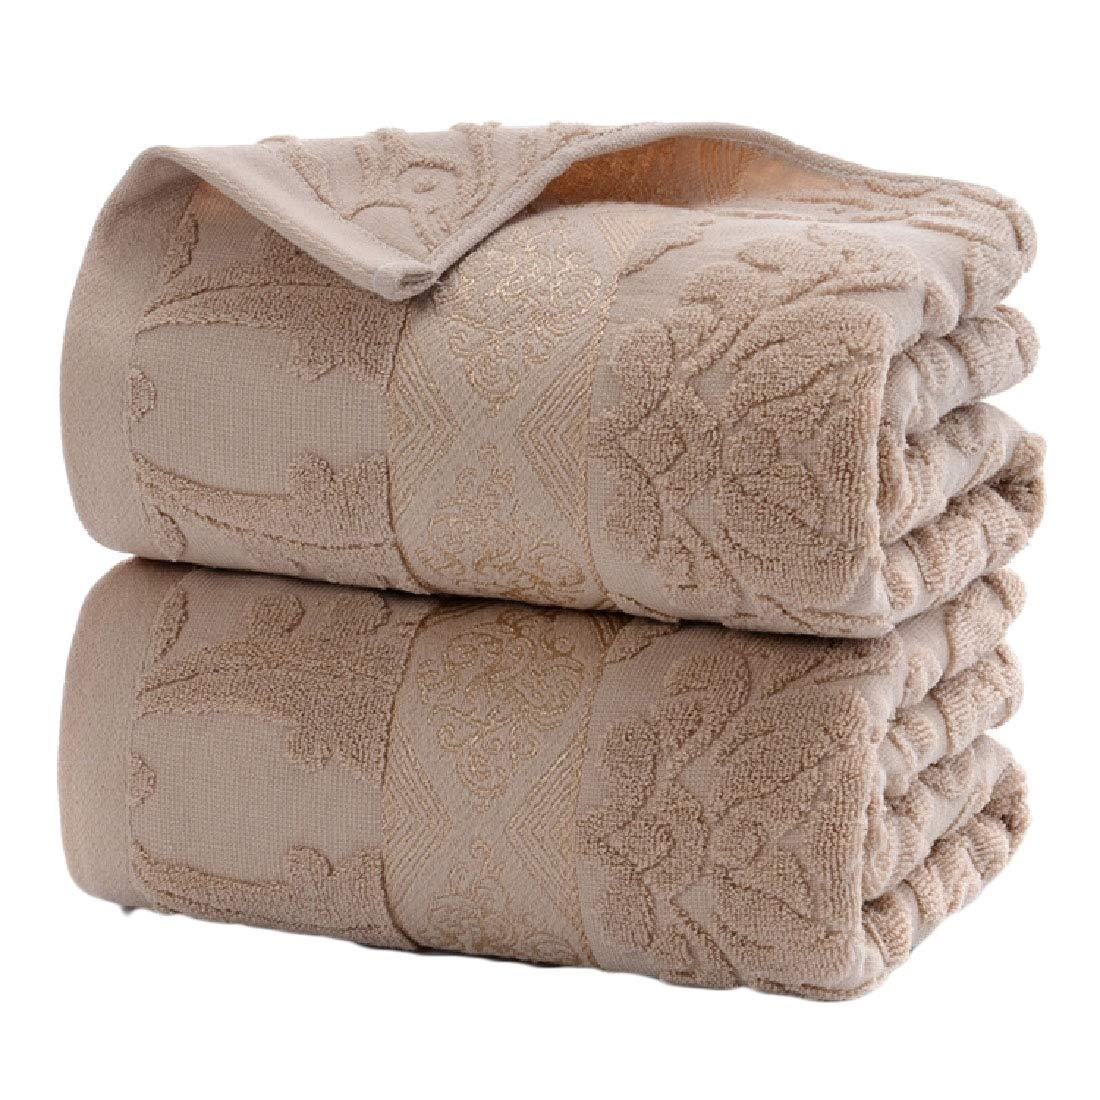 Sebaby Everyday Eco-Friendly Variety Pool Gym Quality Plain Fit-and-Flare Soft Contenta Classic Extra Large Fade-Resistant Cute Bath Towel Set Khaki 70140